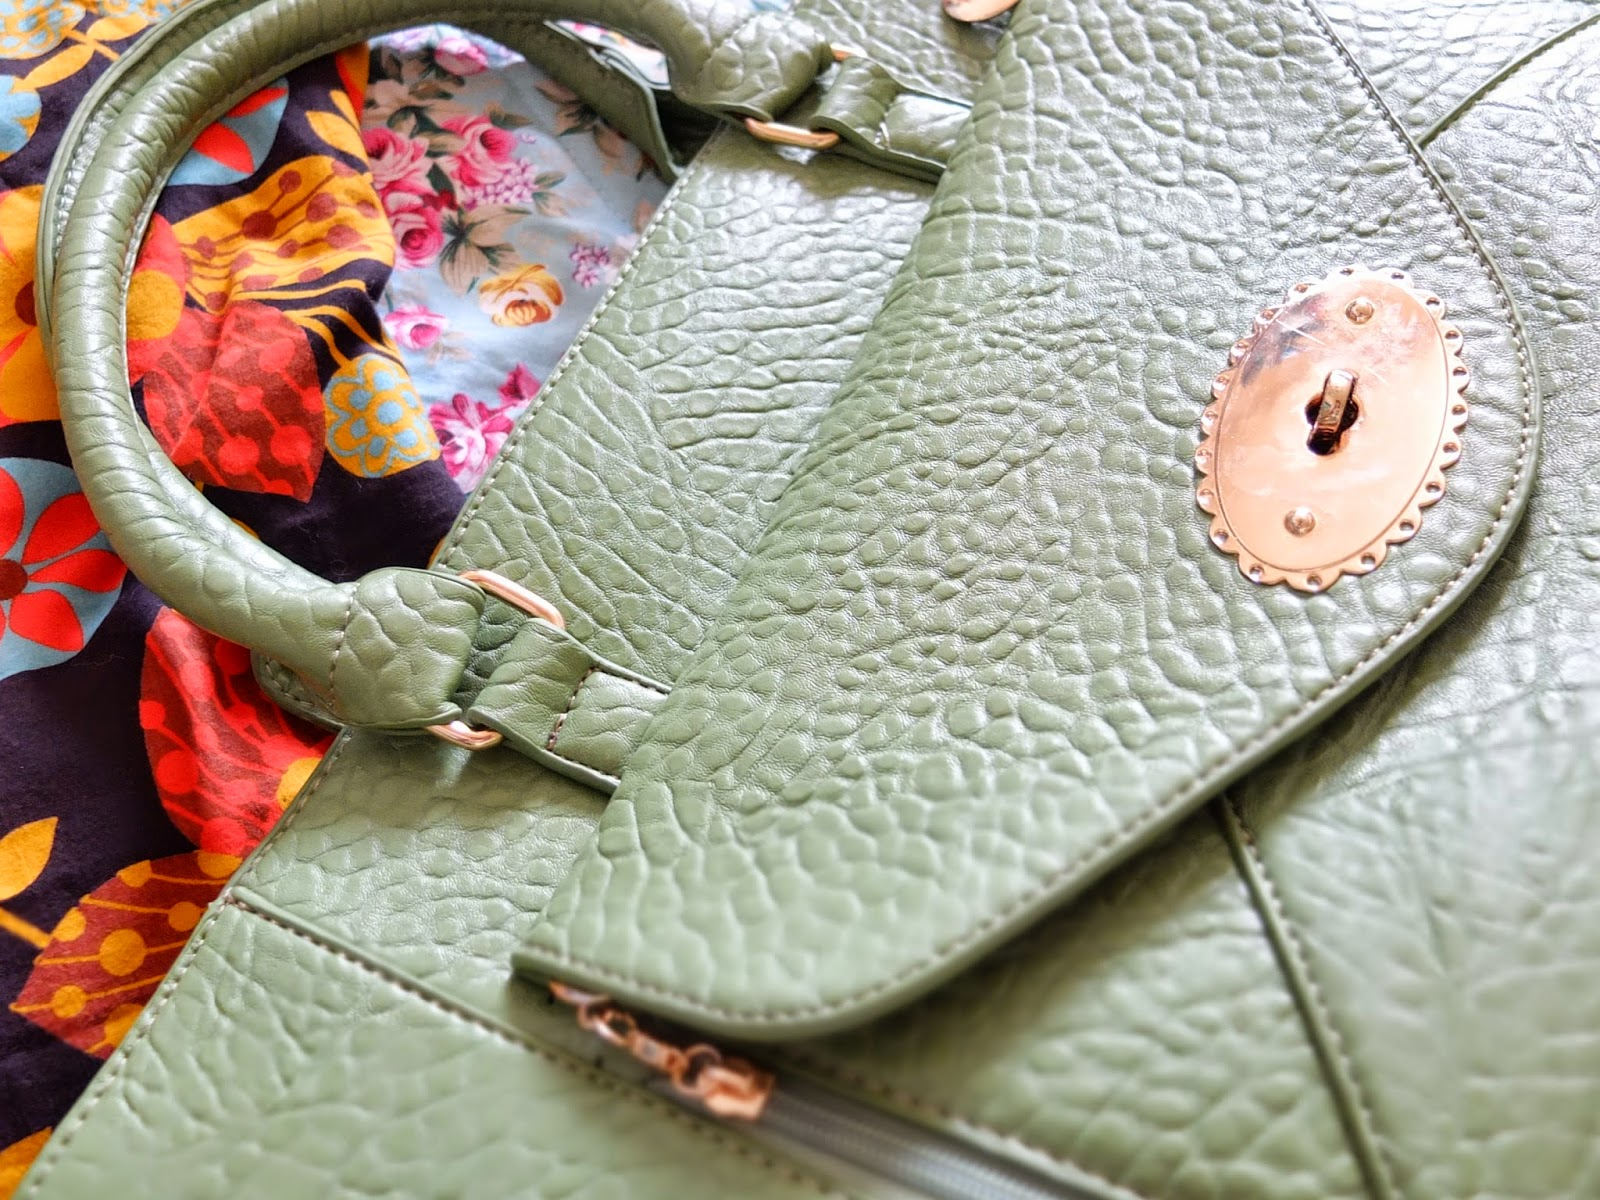 Sixties Style on Hello Terri Lowe Blog: Mulberry style bag